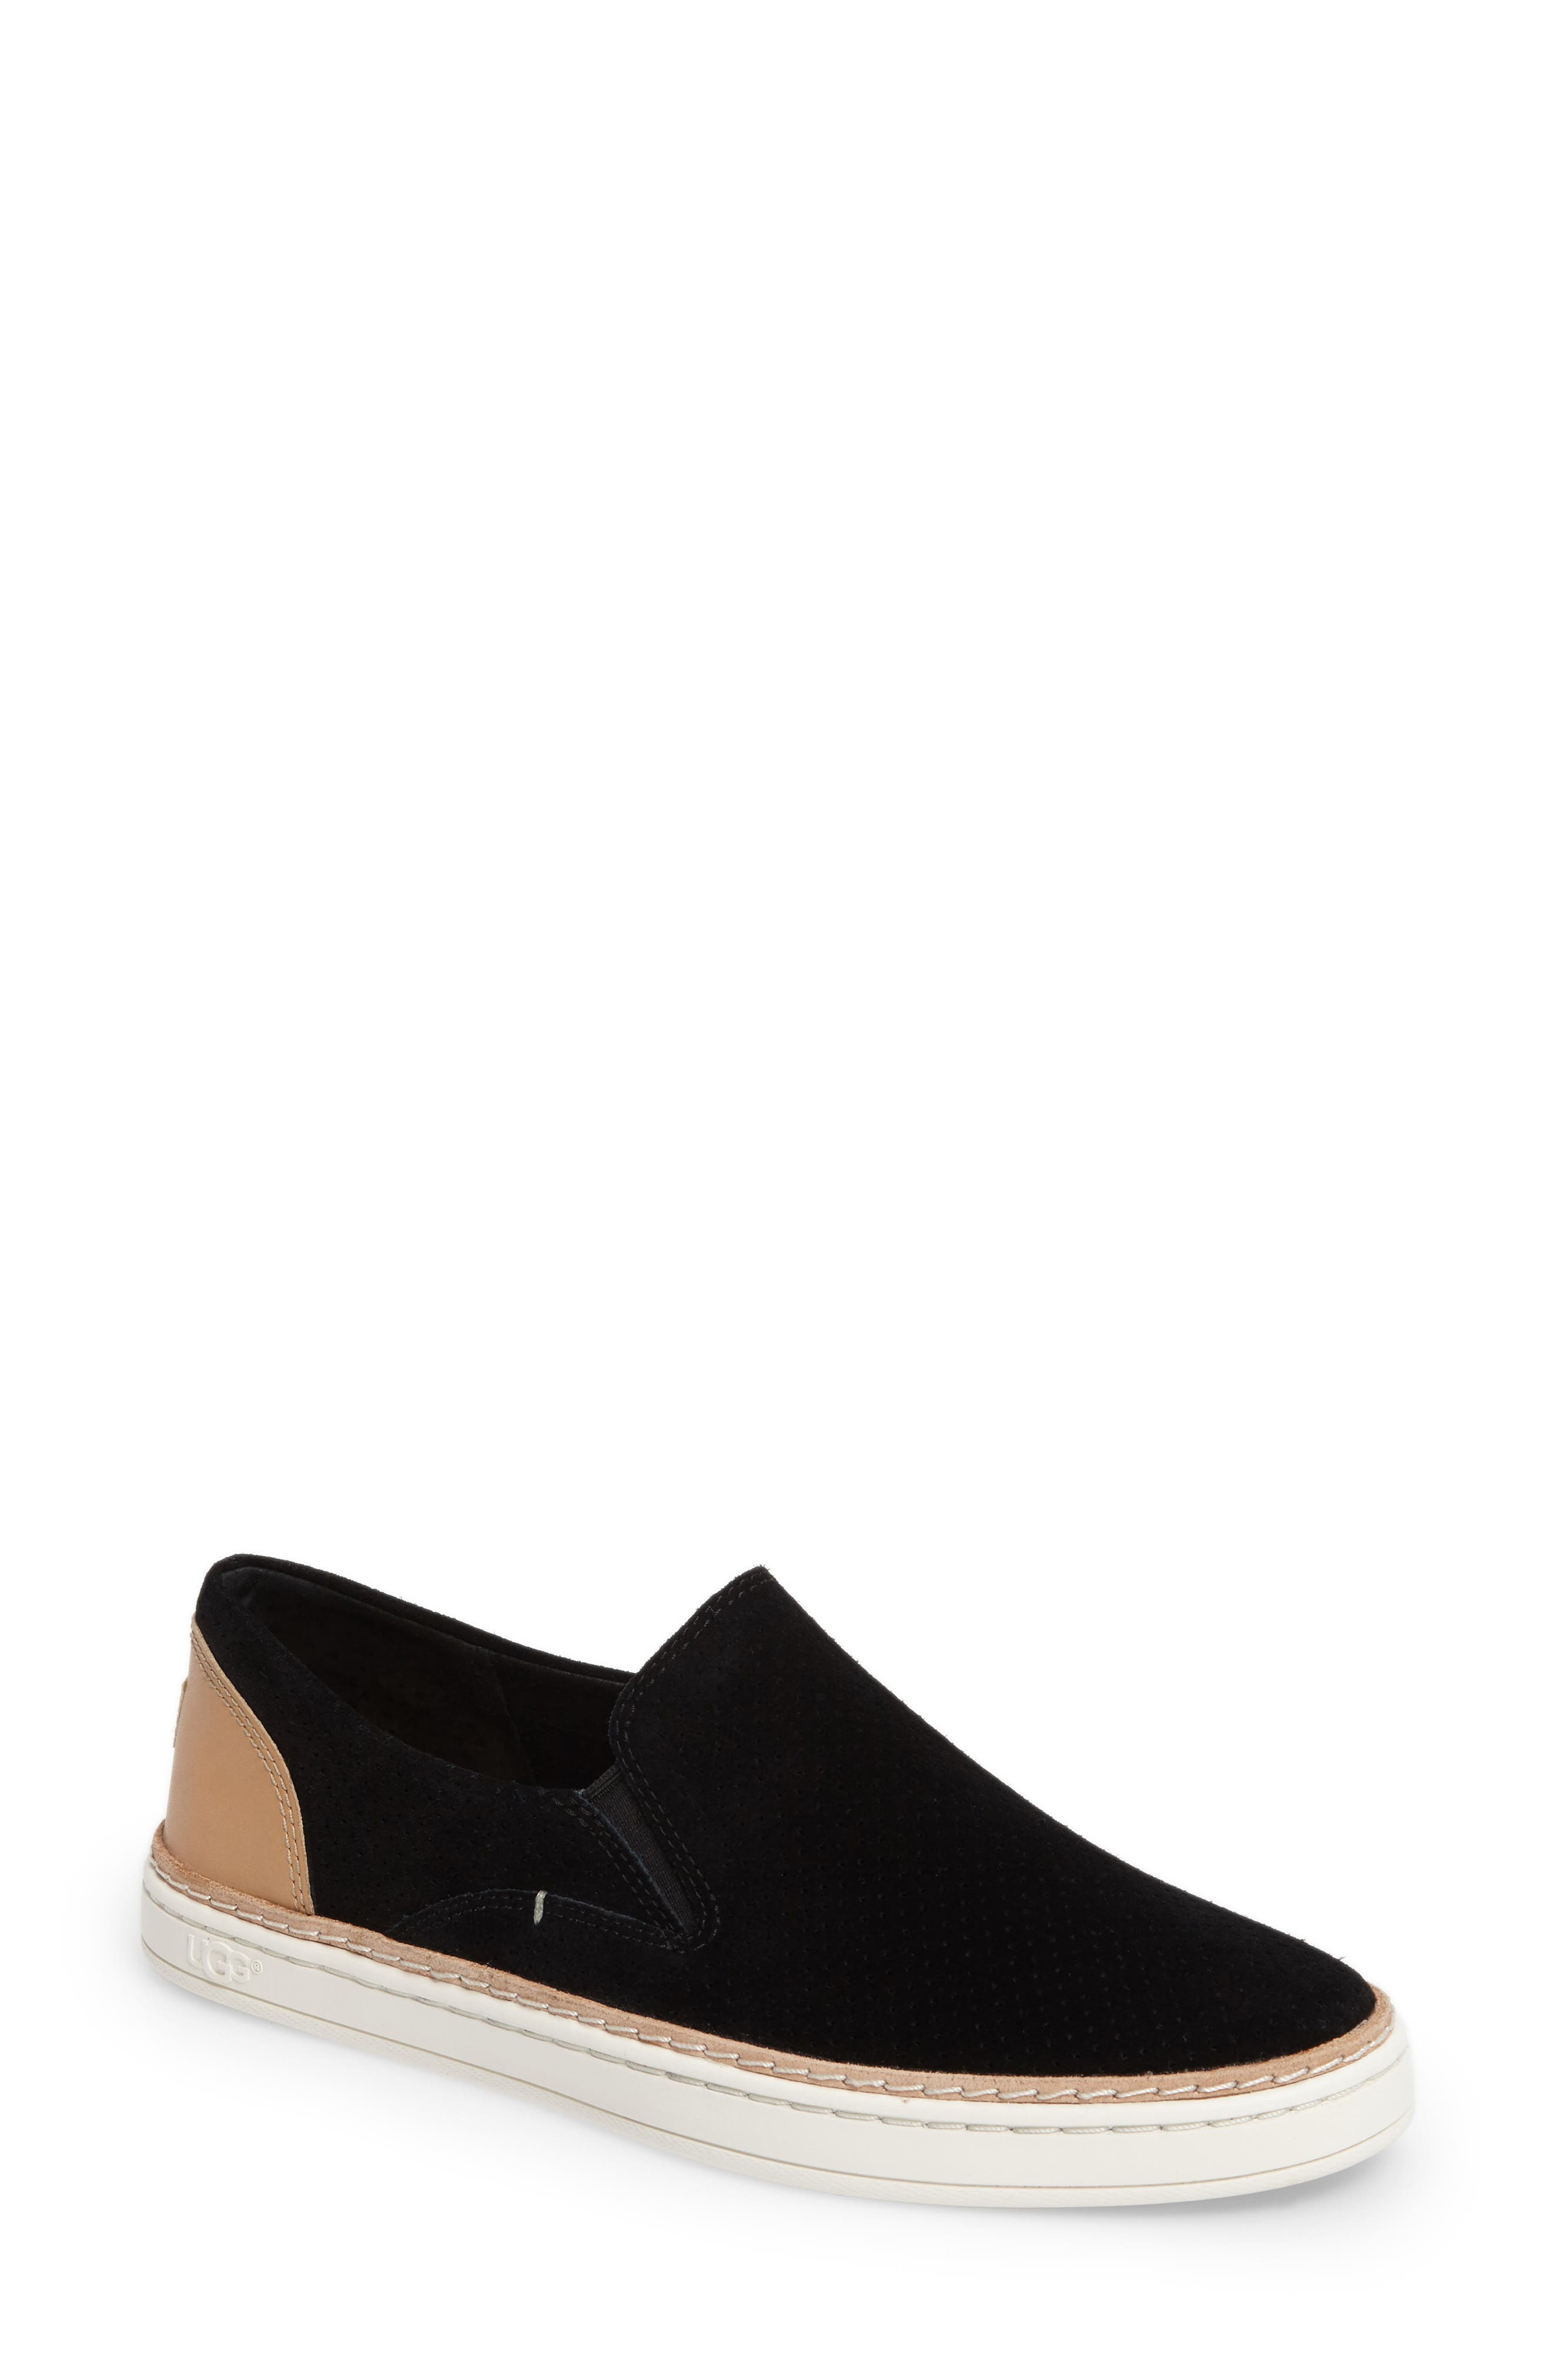 Adley Slip-On Sneaker,                         Main,                         color, 001